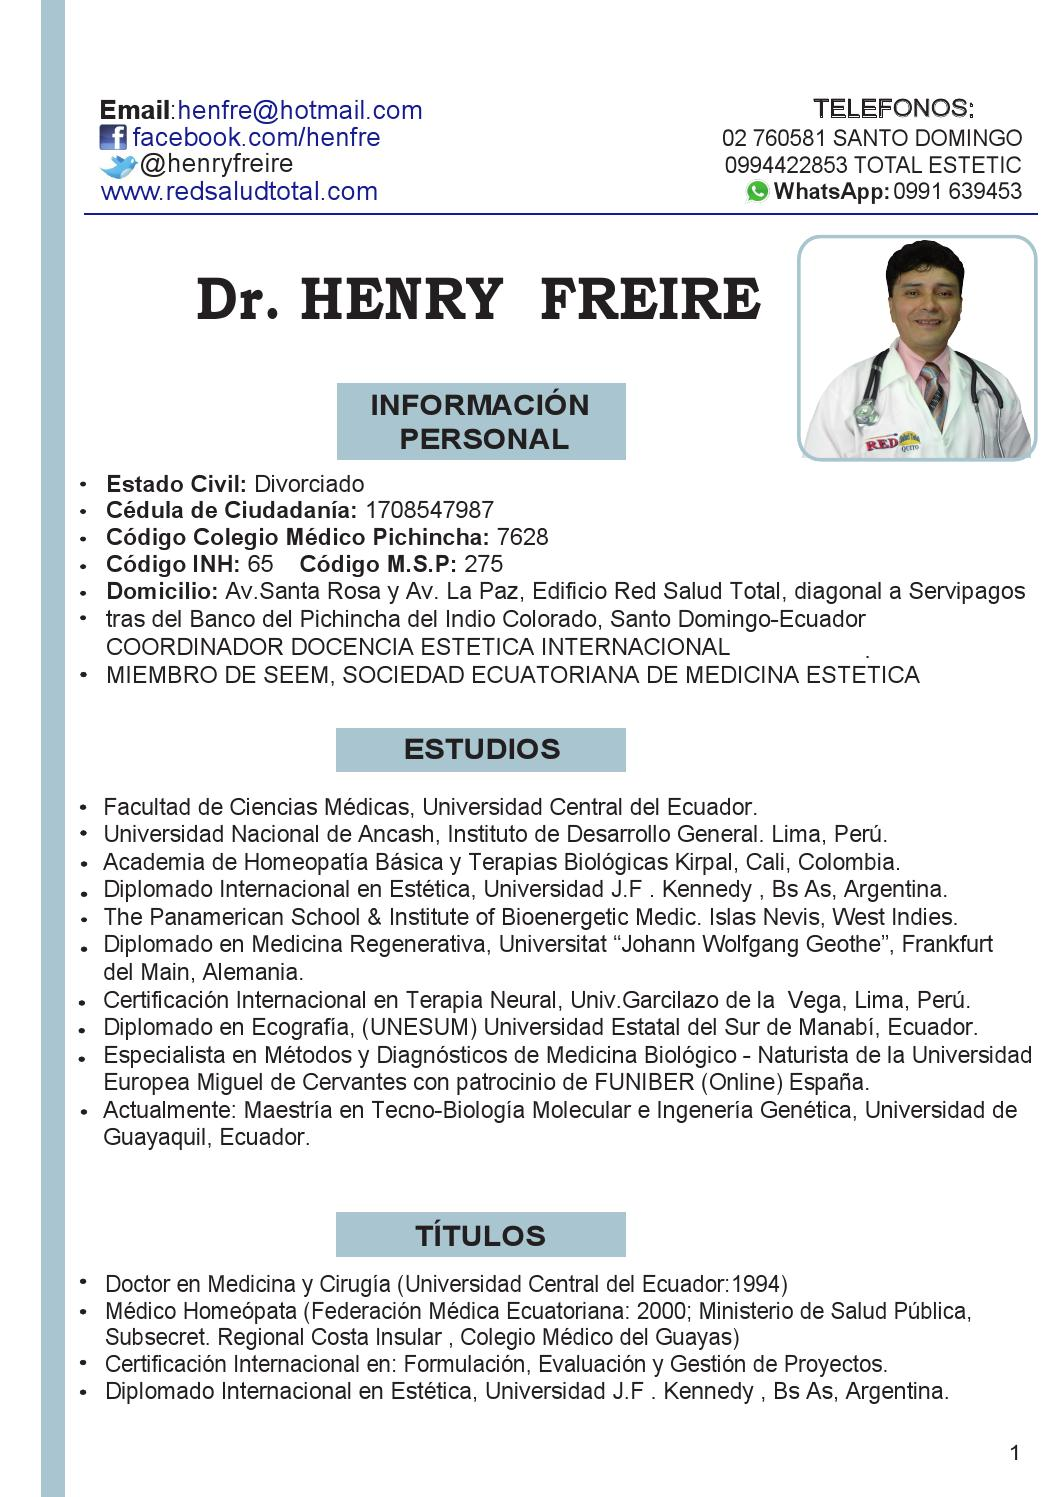 Curriculum dr henry freire by Dr. Henry Freire - issuu